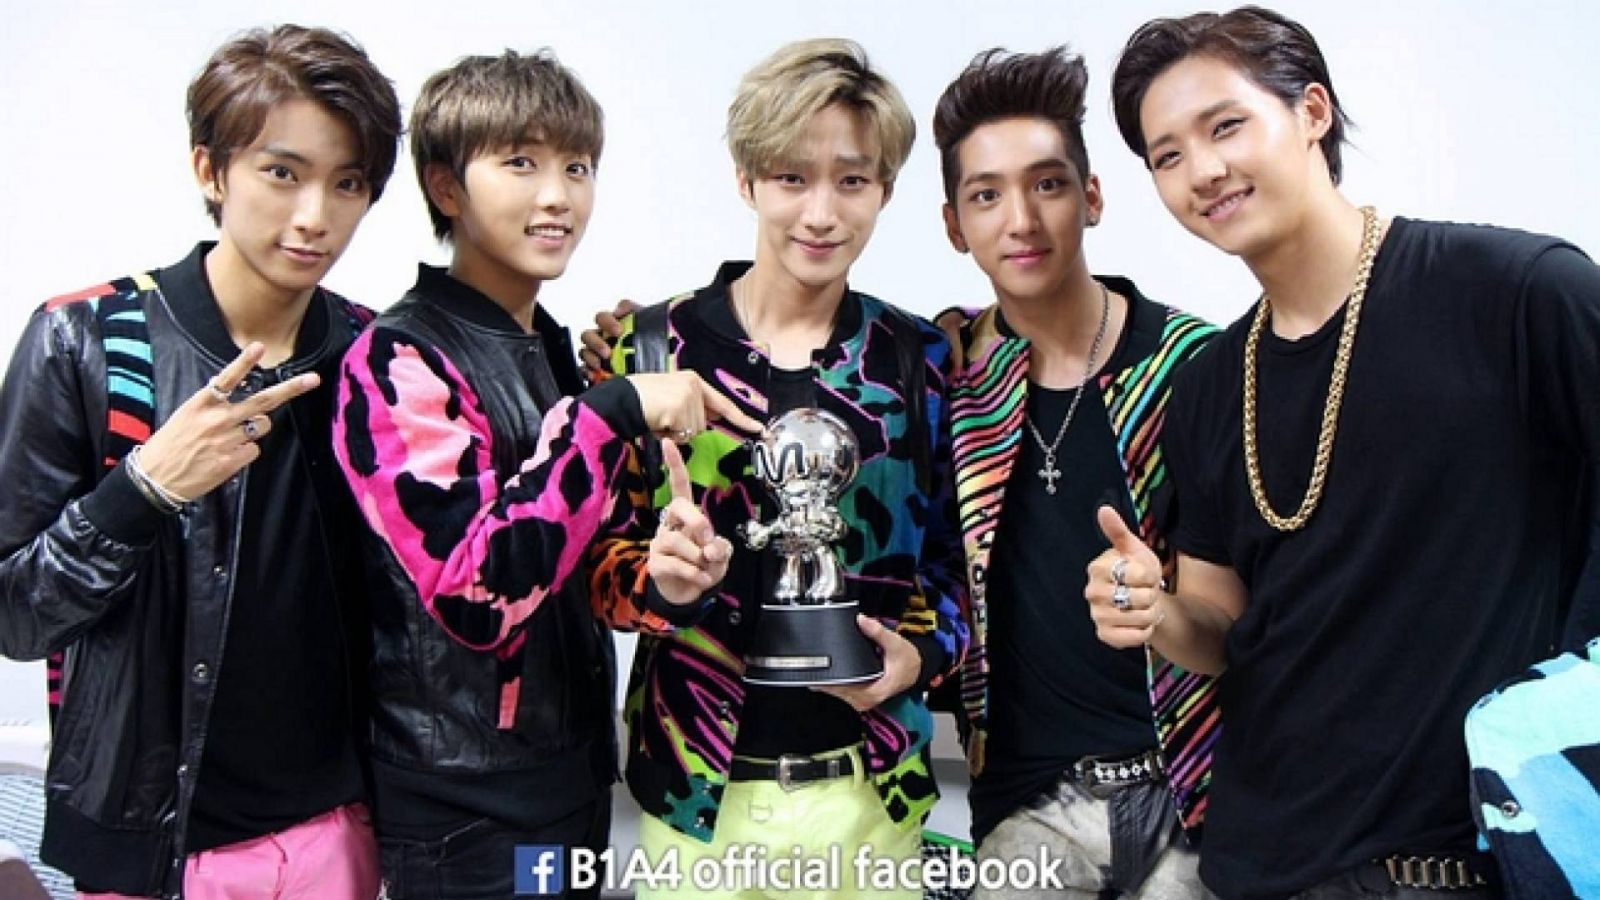 Sweet Girl: lançamento de comeback do B1A4 © WM ENTERTAINMENT, B1A4 Official Facebook Page